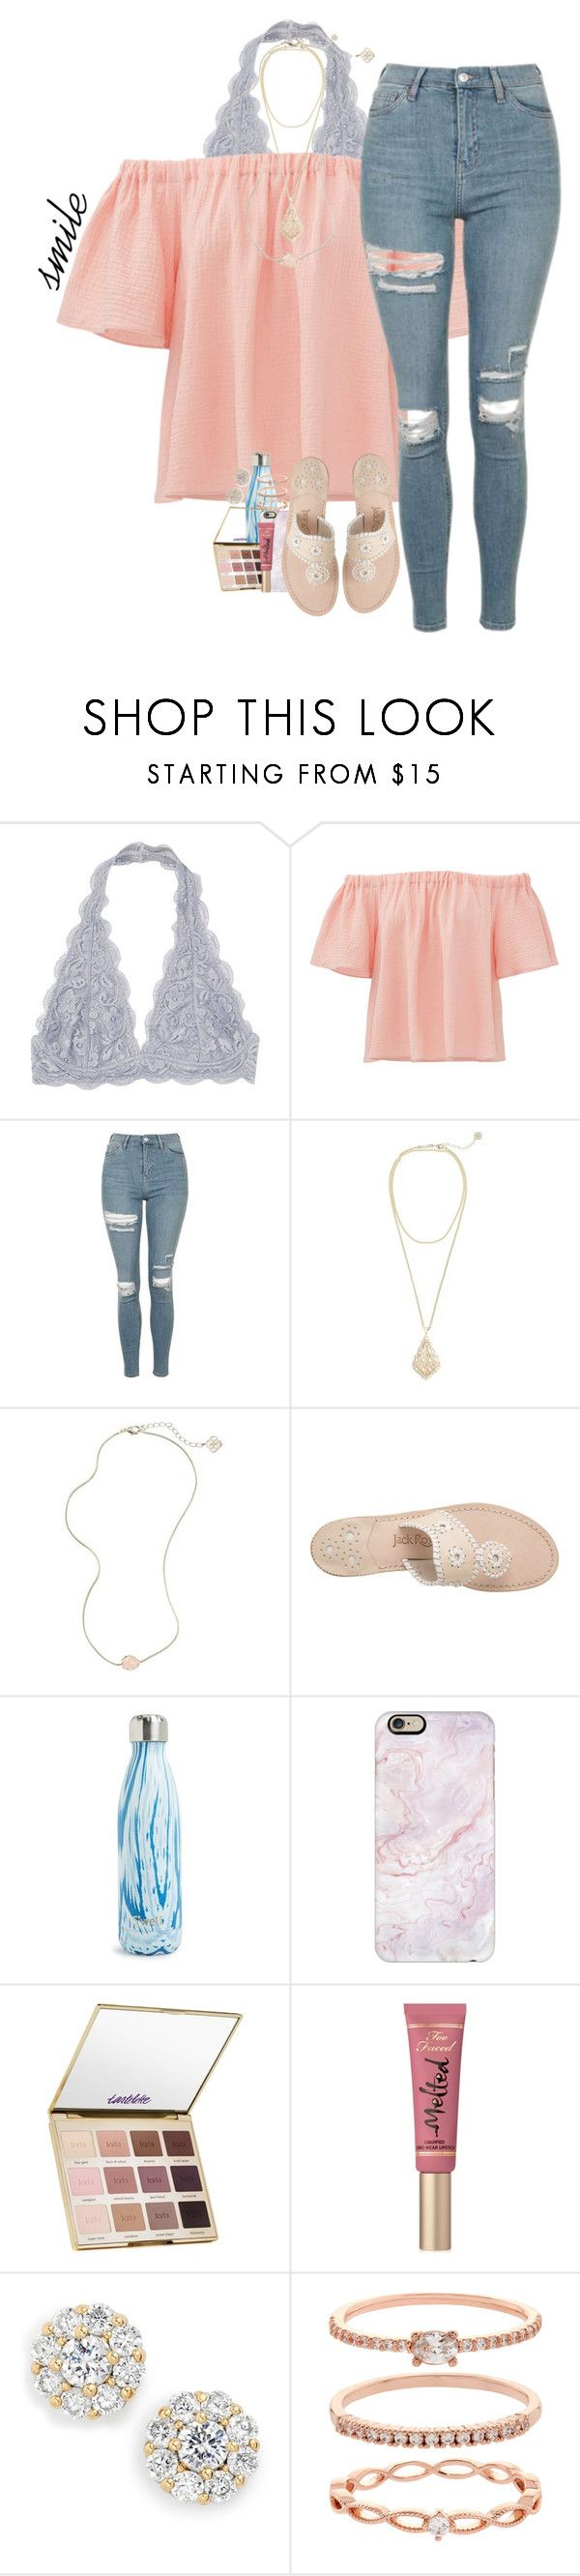 """This weather"" by haileymartin12 ❤ liked on Polyvore featuring Rebecca Taylor, Topshop, Kendra Scott, Jack Rogers, S'well, Casetify, tarte, Too Faced Cosmetics, Kate Spade and Accessorize"